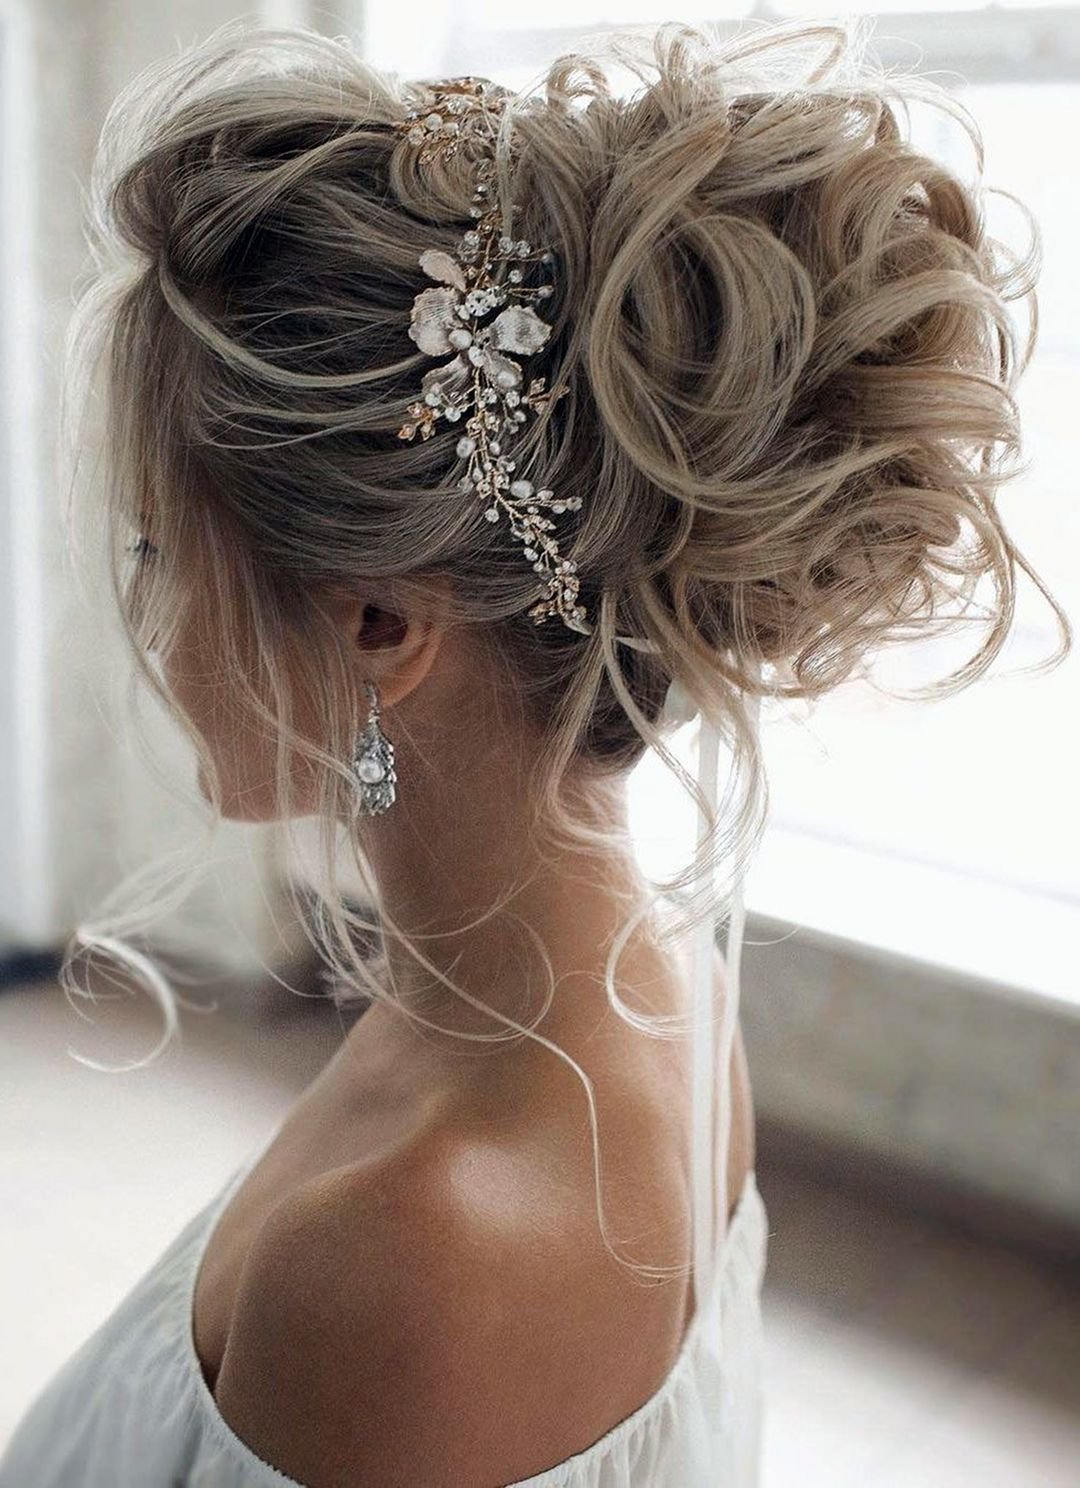 10 Charming Bridesmaid Hairstyles Ideas You Can Try In 2020 Chic Hairstyles Long Hair Styles Summer Wedding Hairstyles